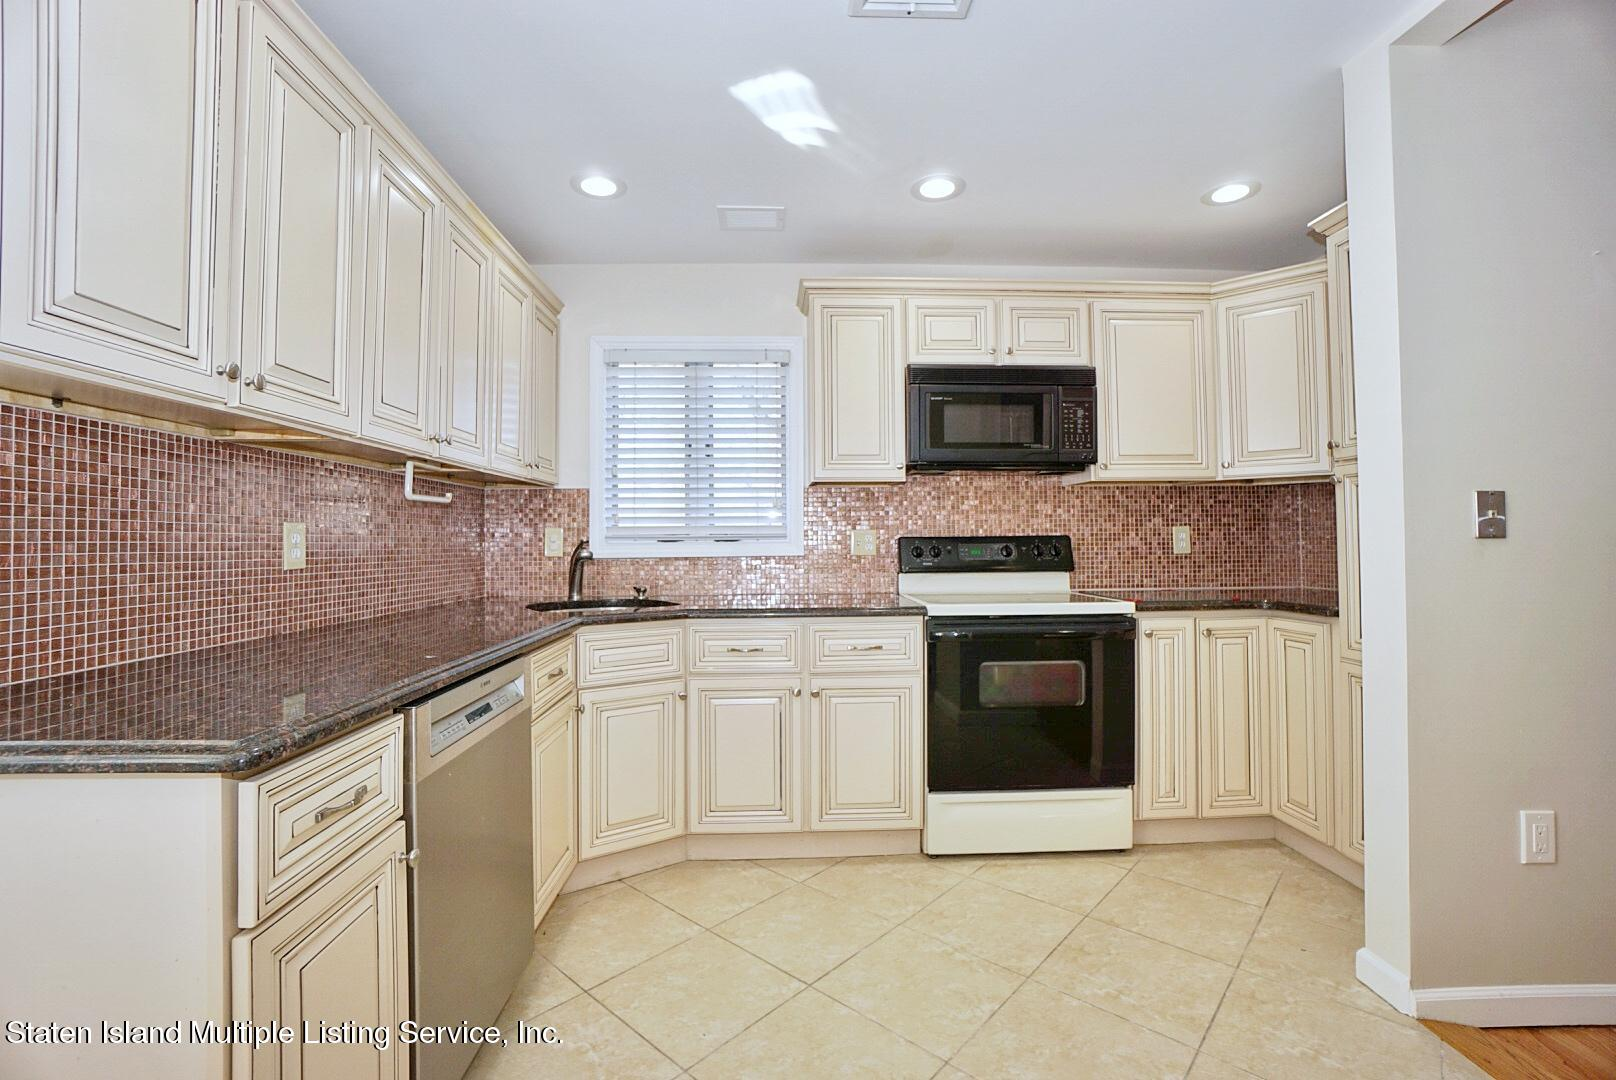 Single Family - Detached 97 Knox Place  Staten Island, NY 10314, MLS-1143147-6